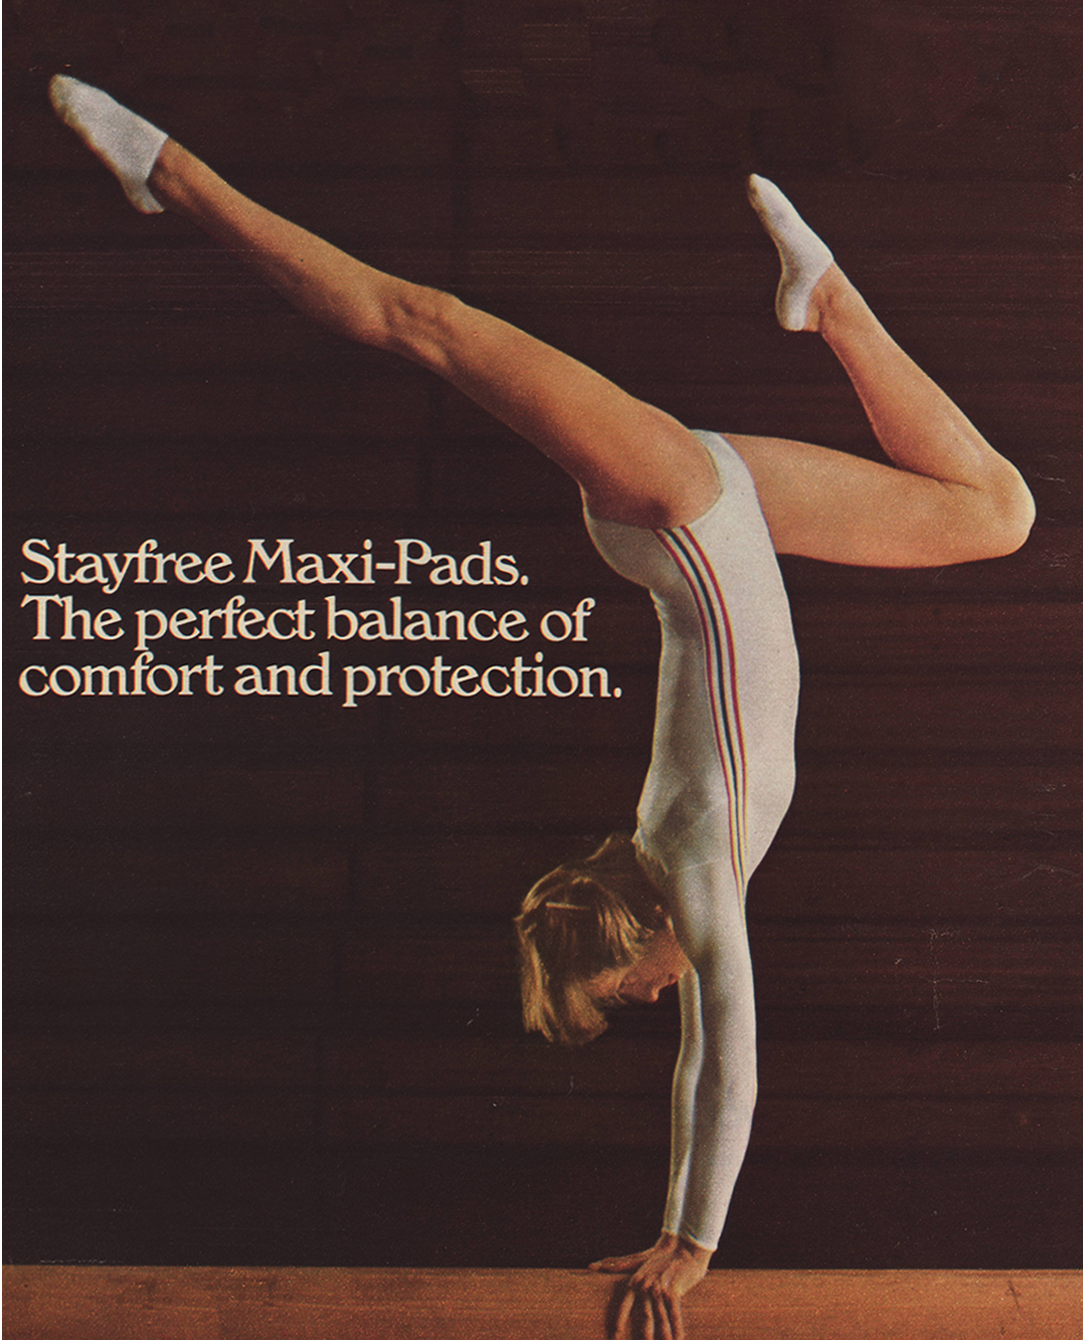 The Invention of the Modern Stayfree® Mini and Maxi-Pads